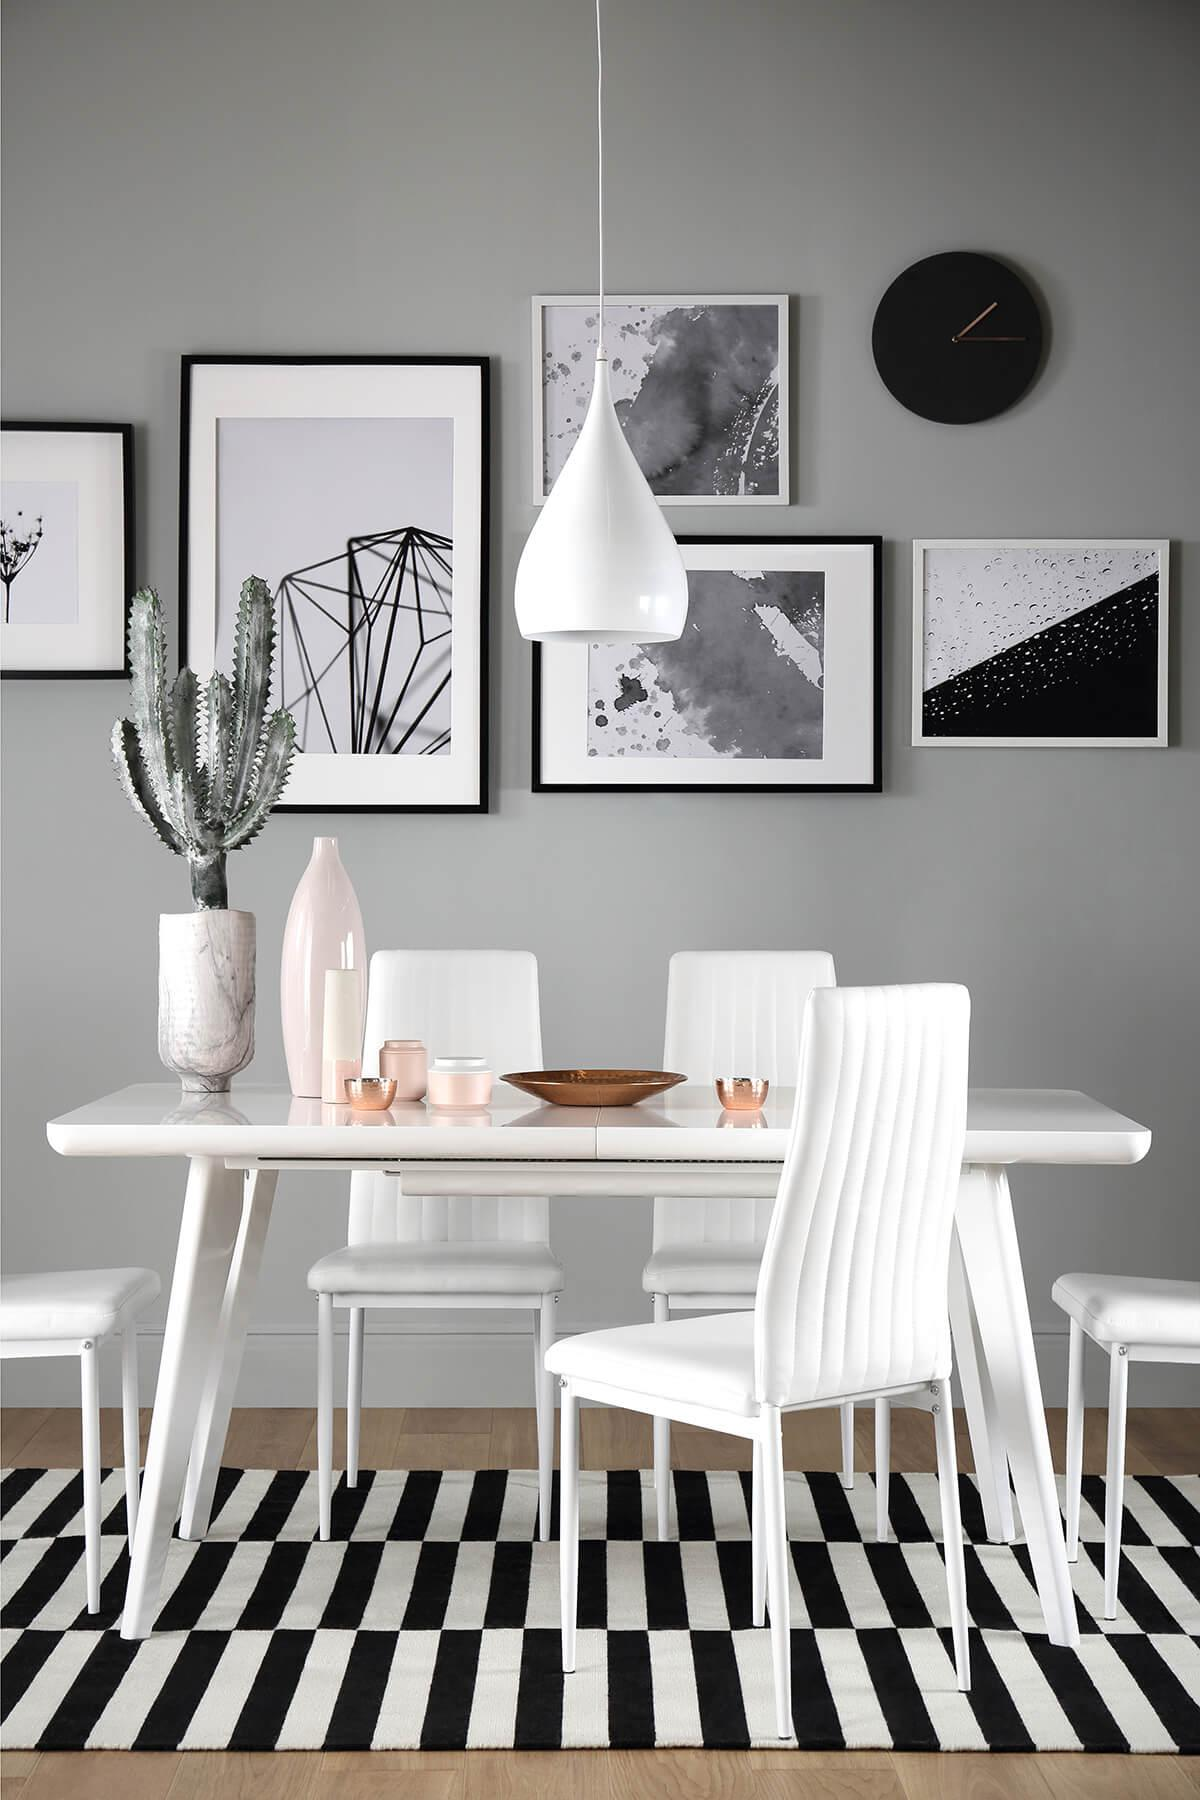 Vila White High Gloss Extending Dining Table - with 6 Leon White Chairs (White Legs)